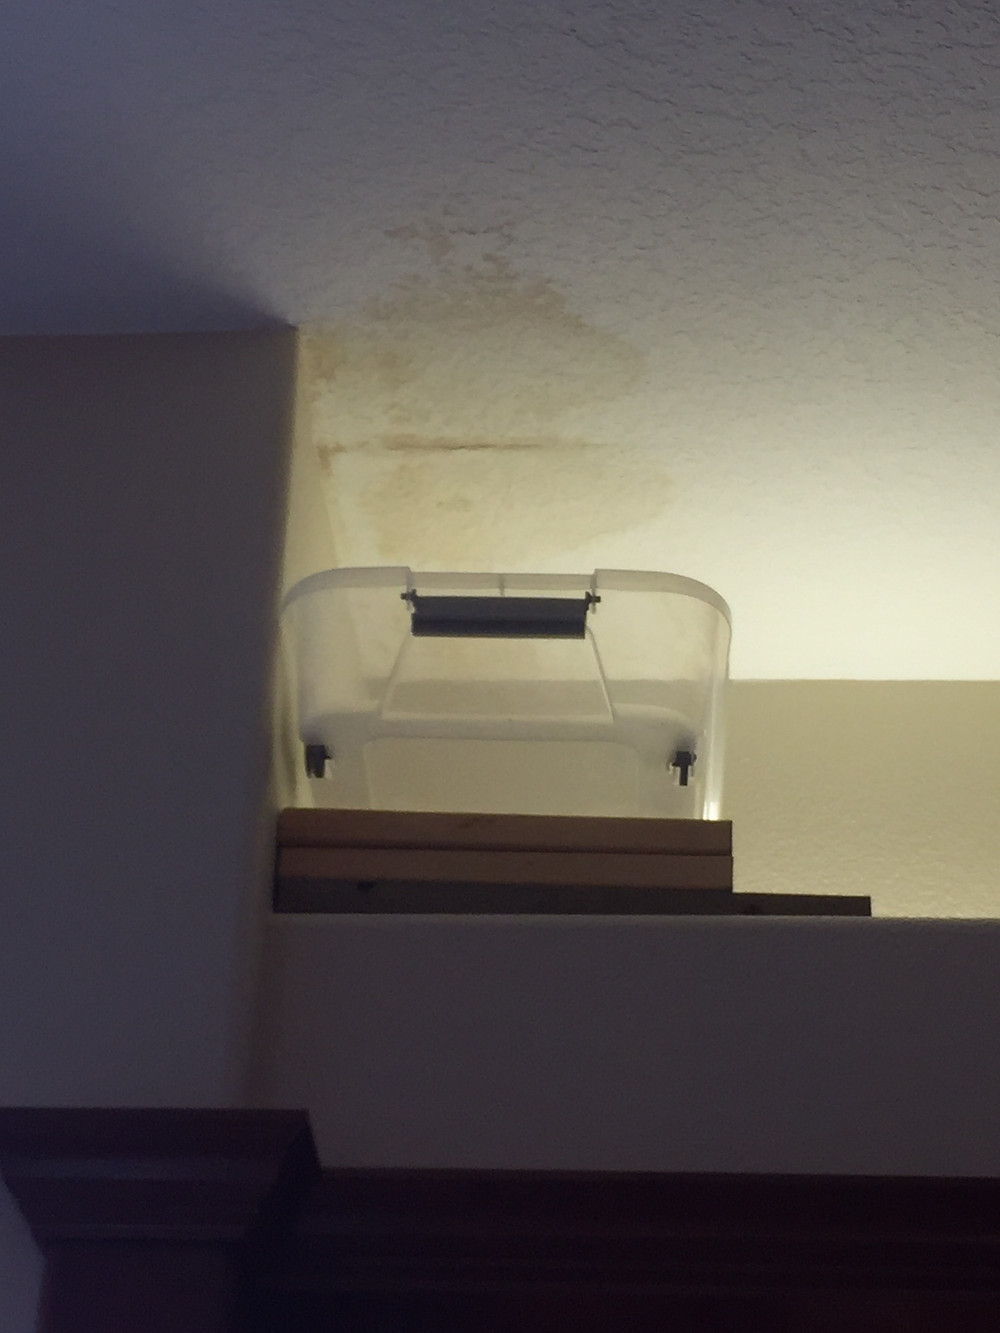 Leaking Roofs and Poor Ventilation can Lead to Mold Growth